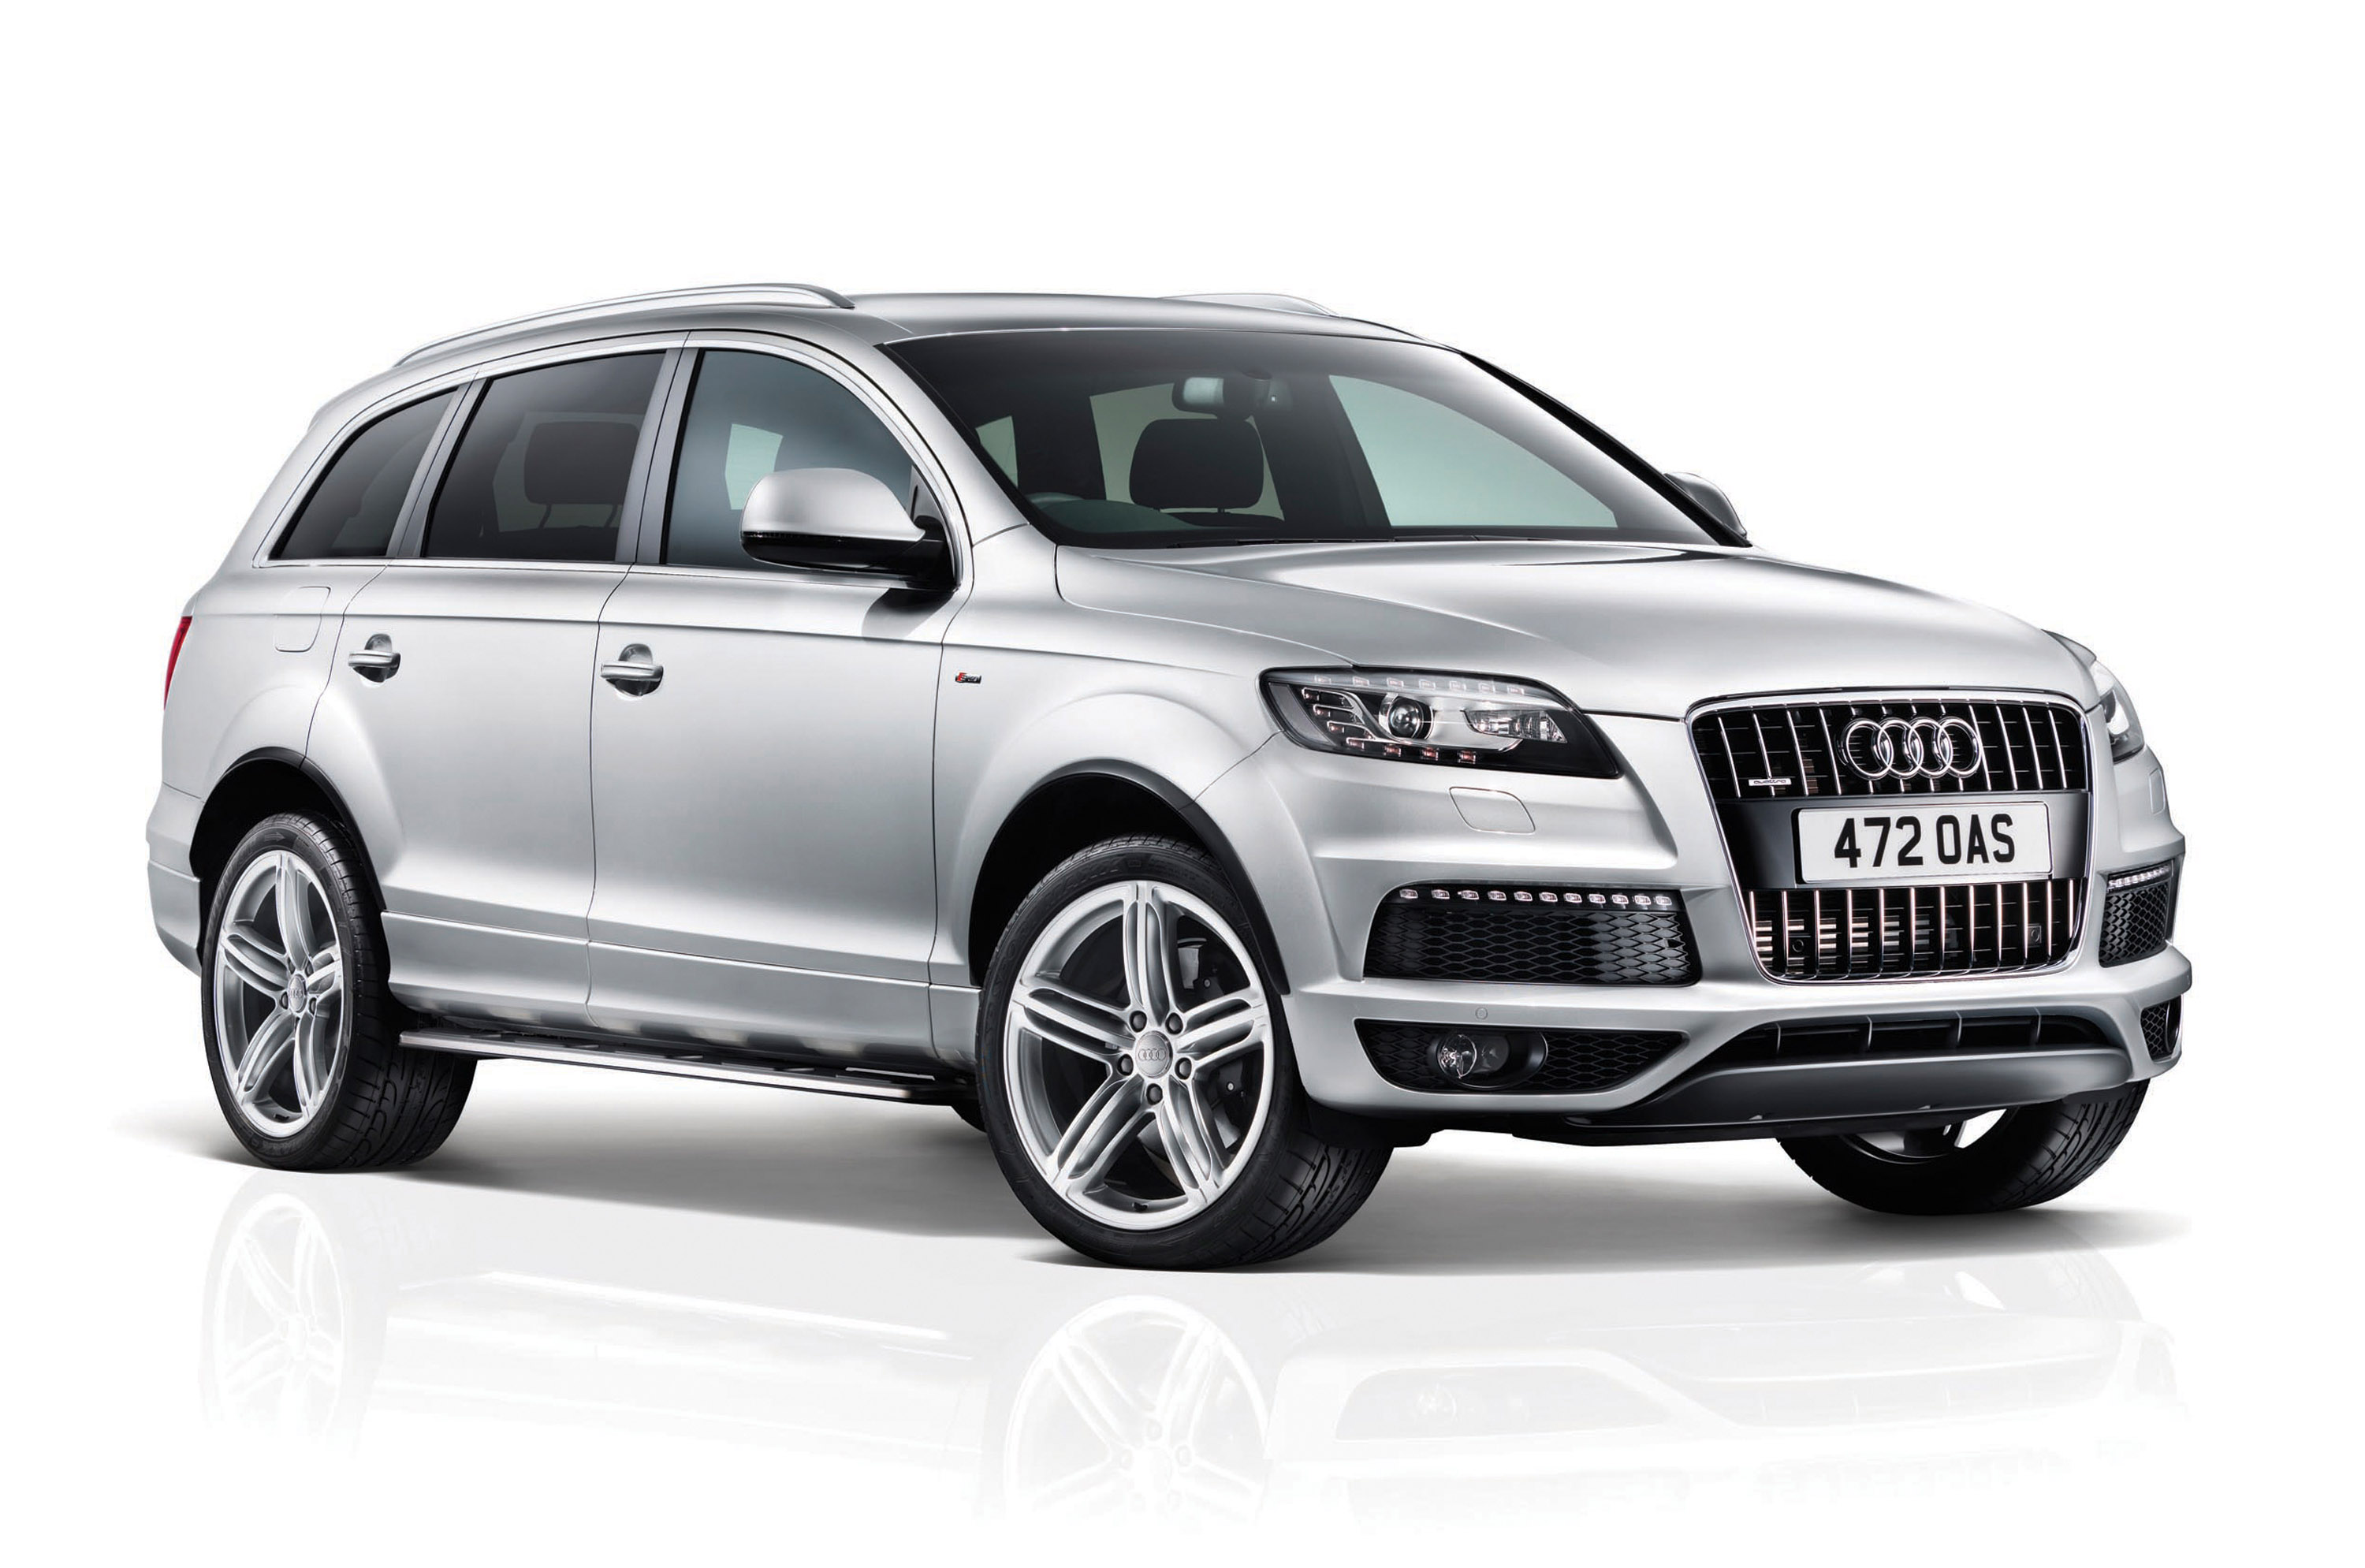 2012 audi q7 3 0 tdi s line plus 204ps. Black Bedroom Furniture Sets. Home Design Ideas